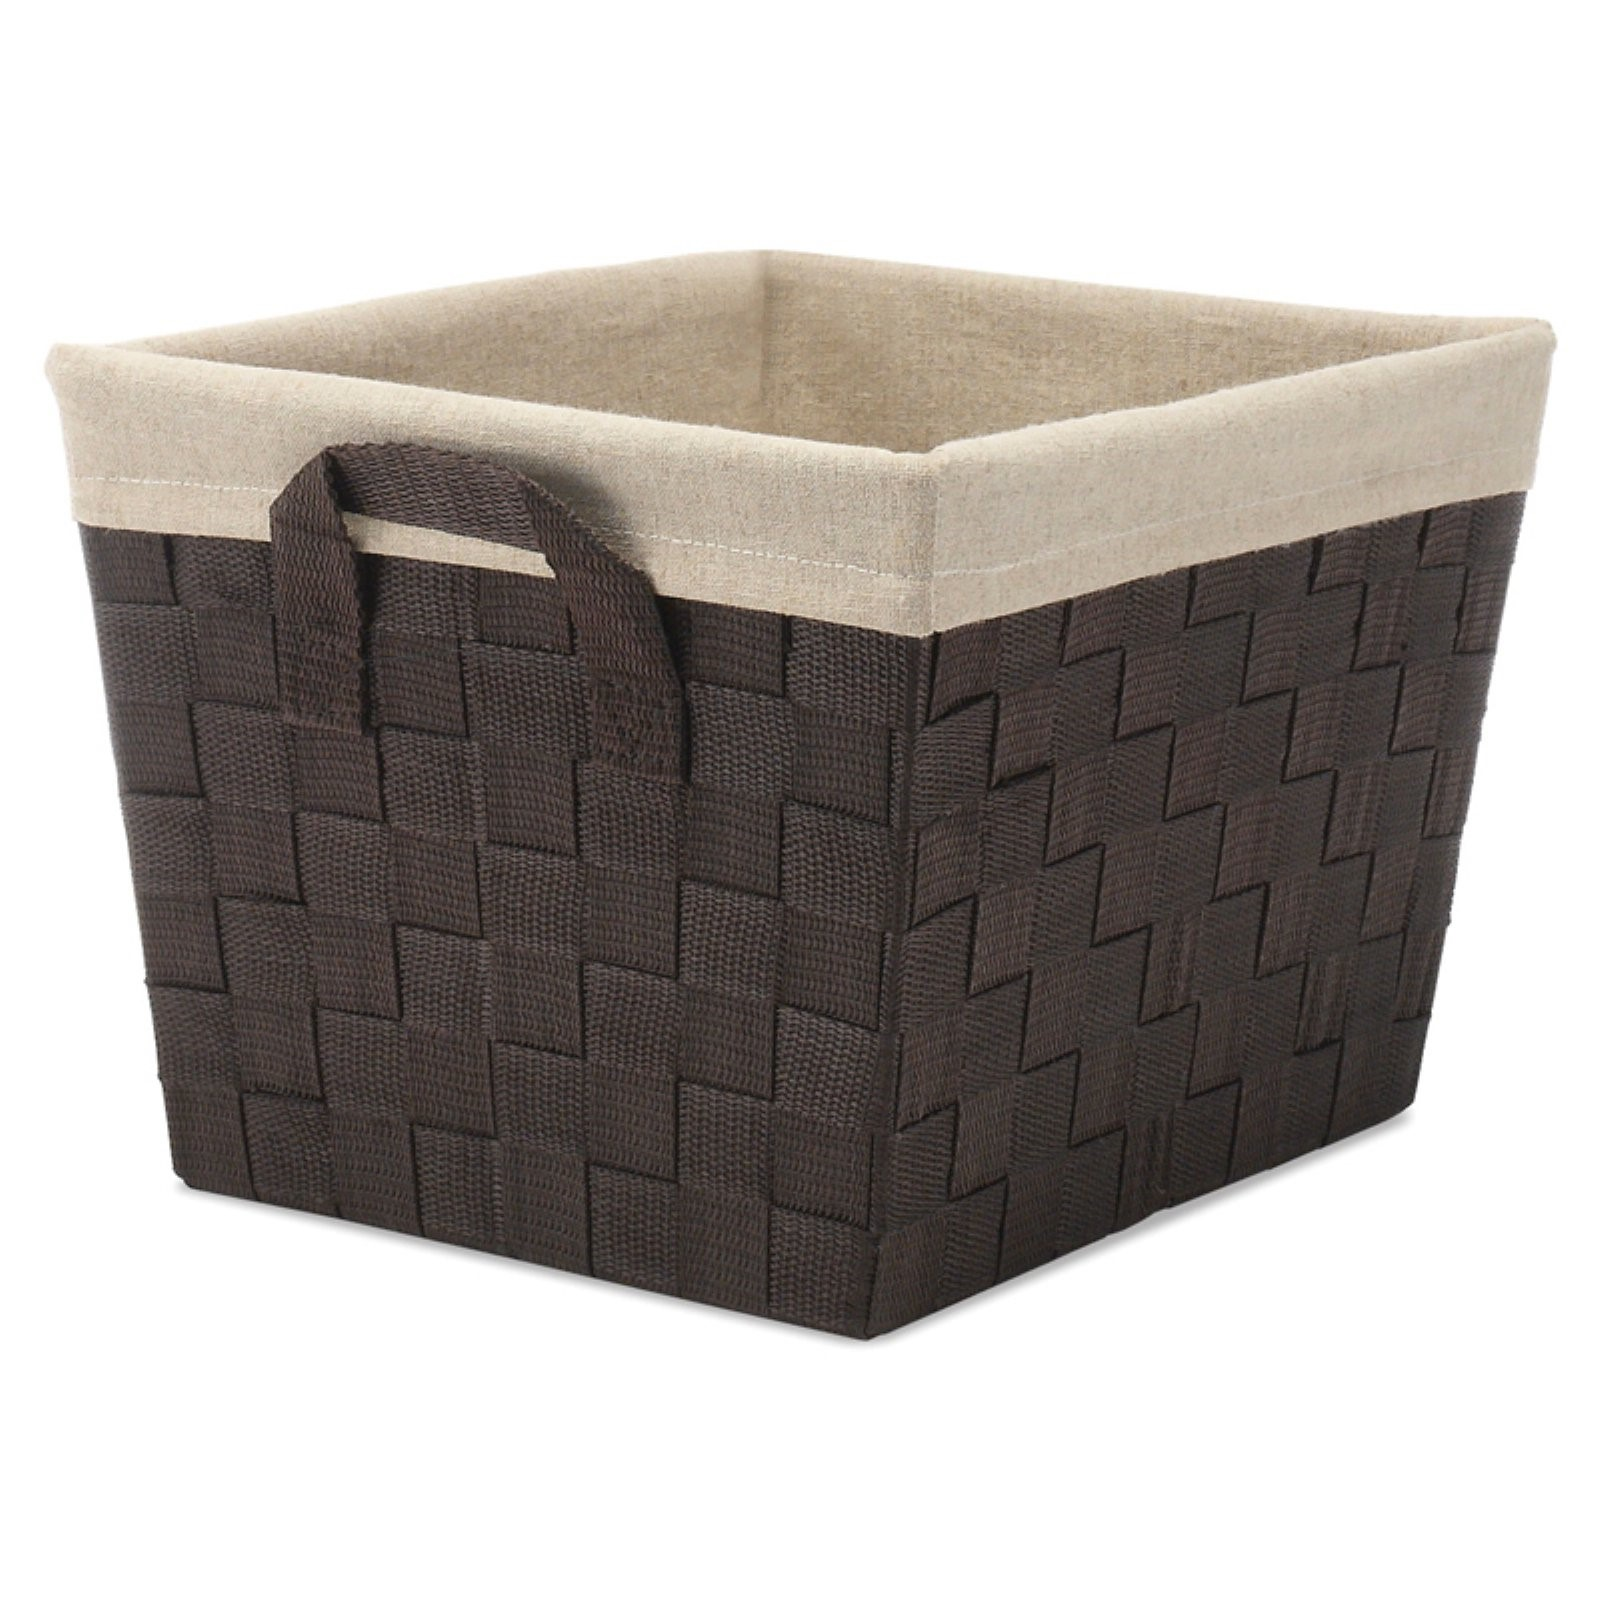 Whitmor Woven Strap Espresso Tote with Liner, Multiple Sizes